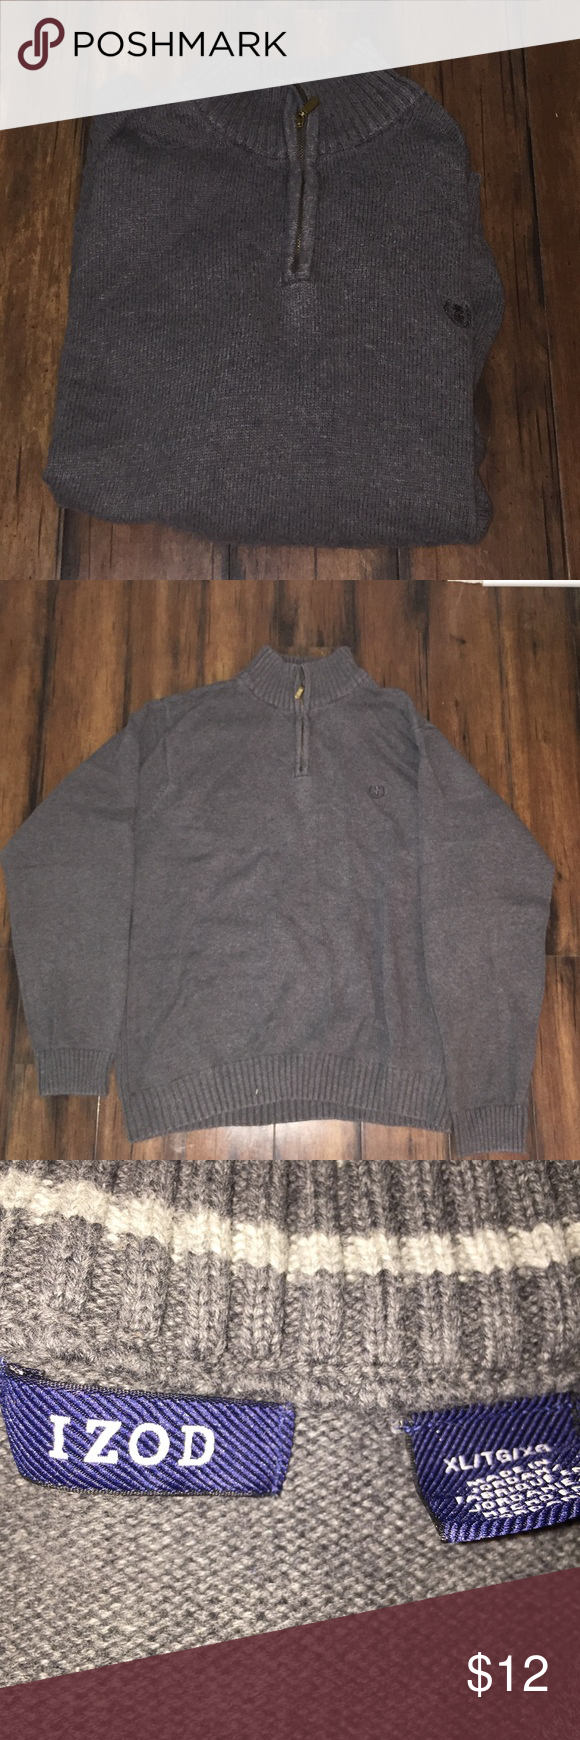 Izod Pullover Sweater Gray Izod 1/4 zip Pullover sweater. Excellent condition.  Gray. Izod Sweaters Zip Up